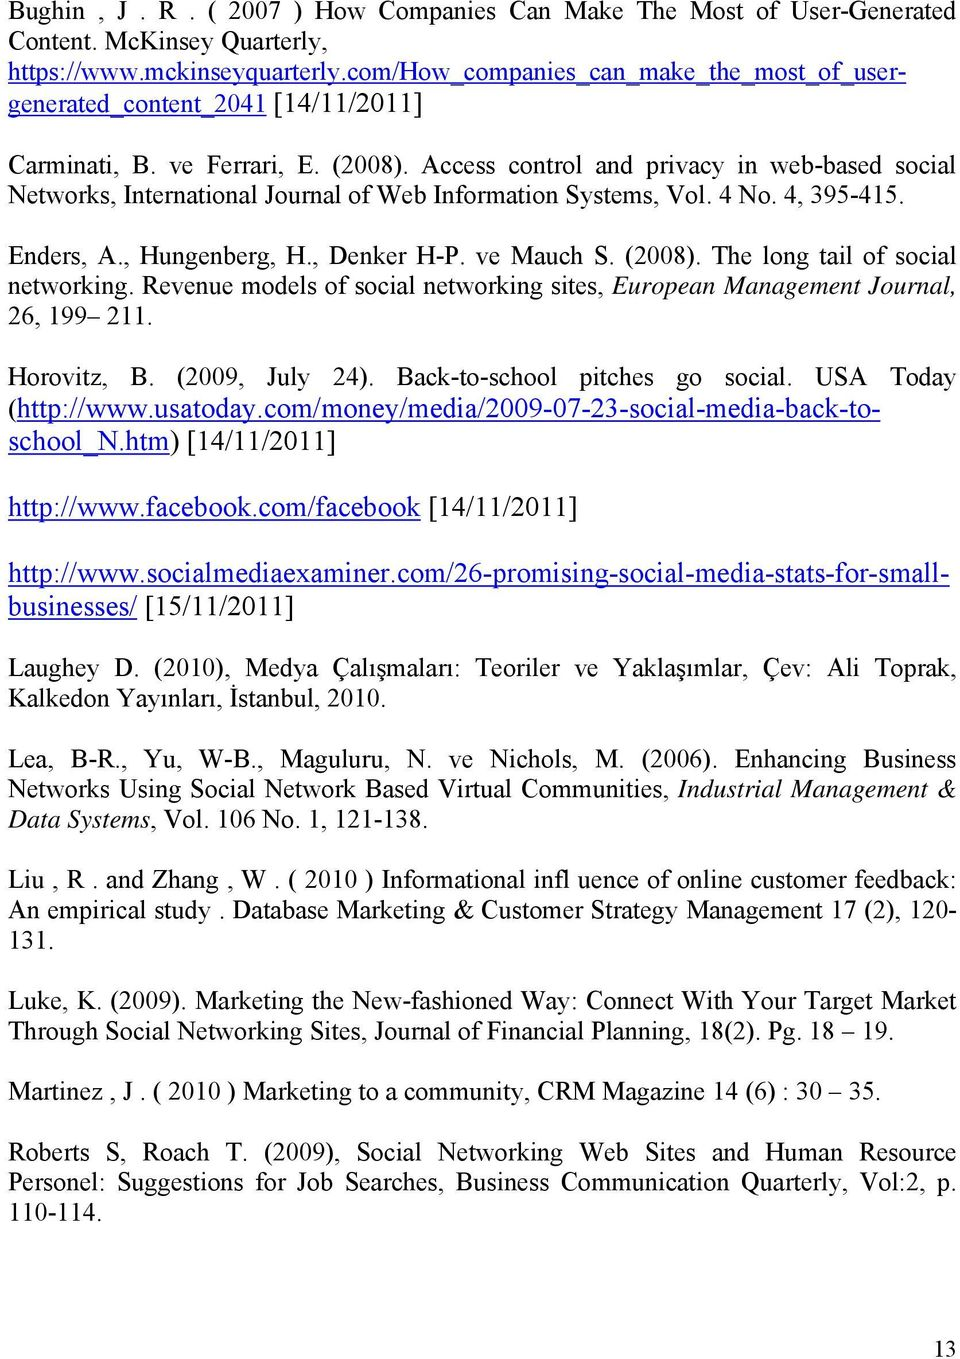 Access control and privacy in web-based social Networks, International Journal of Web Information Systems, Vol. 4 No. 4, 395-415. Enders, A., Hungenberg, H., Denker H-P. ve Mauch S. (2008).